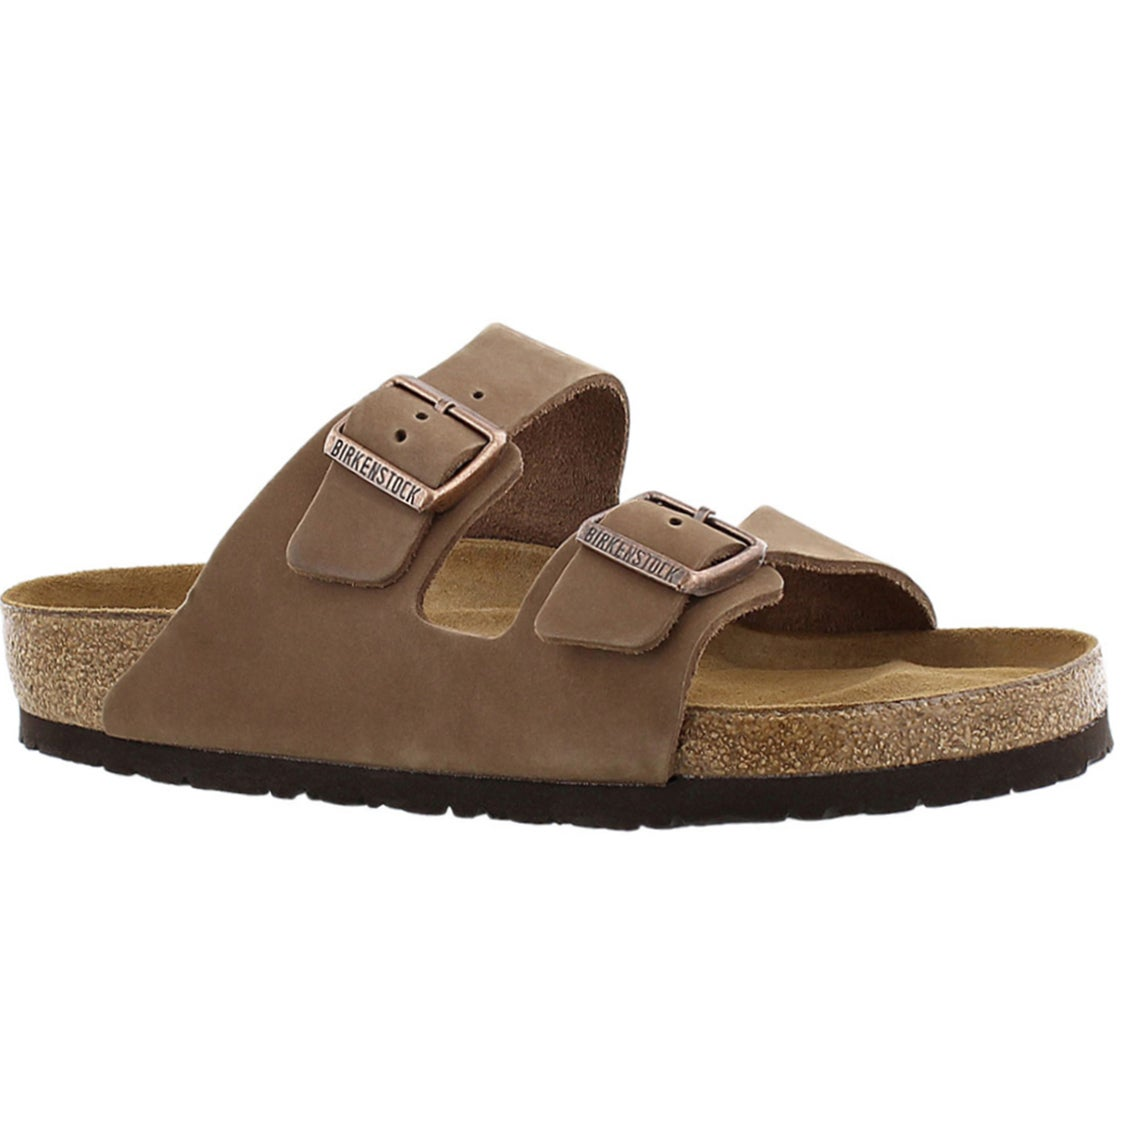 Men's ARIZONA soft footbed cocoa 2 strap sandals